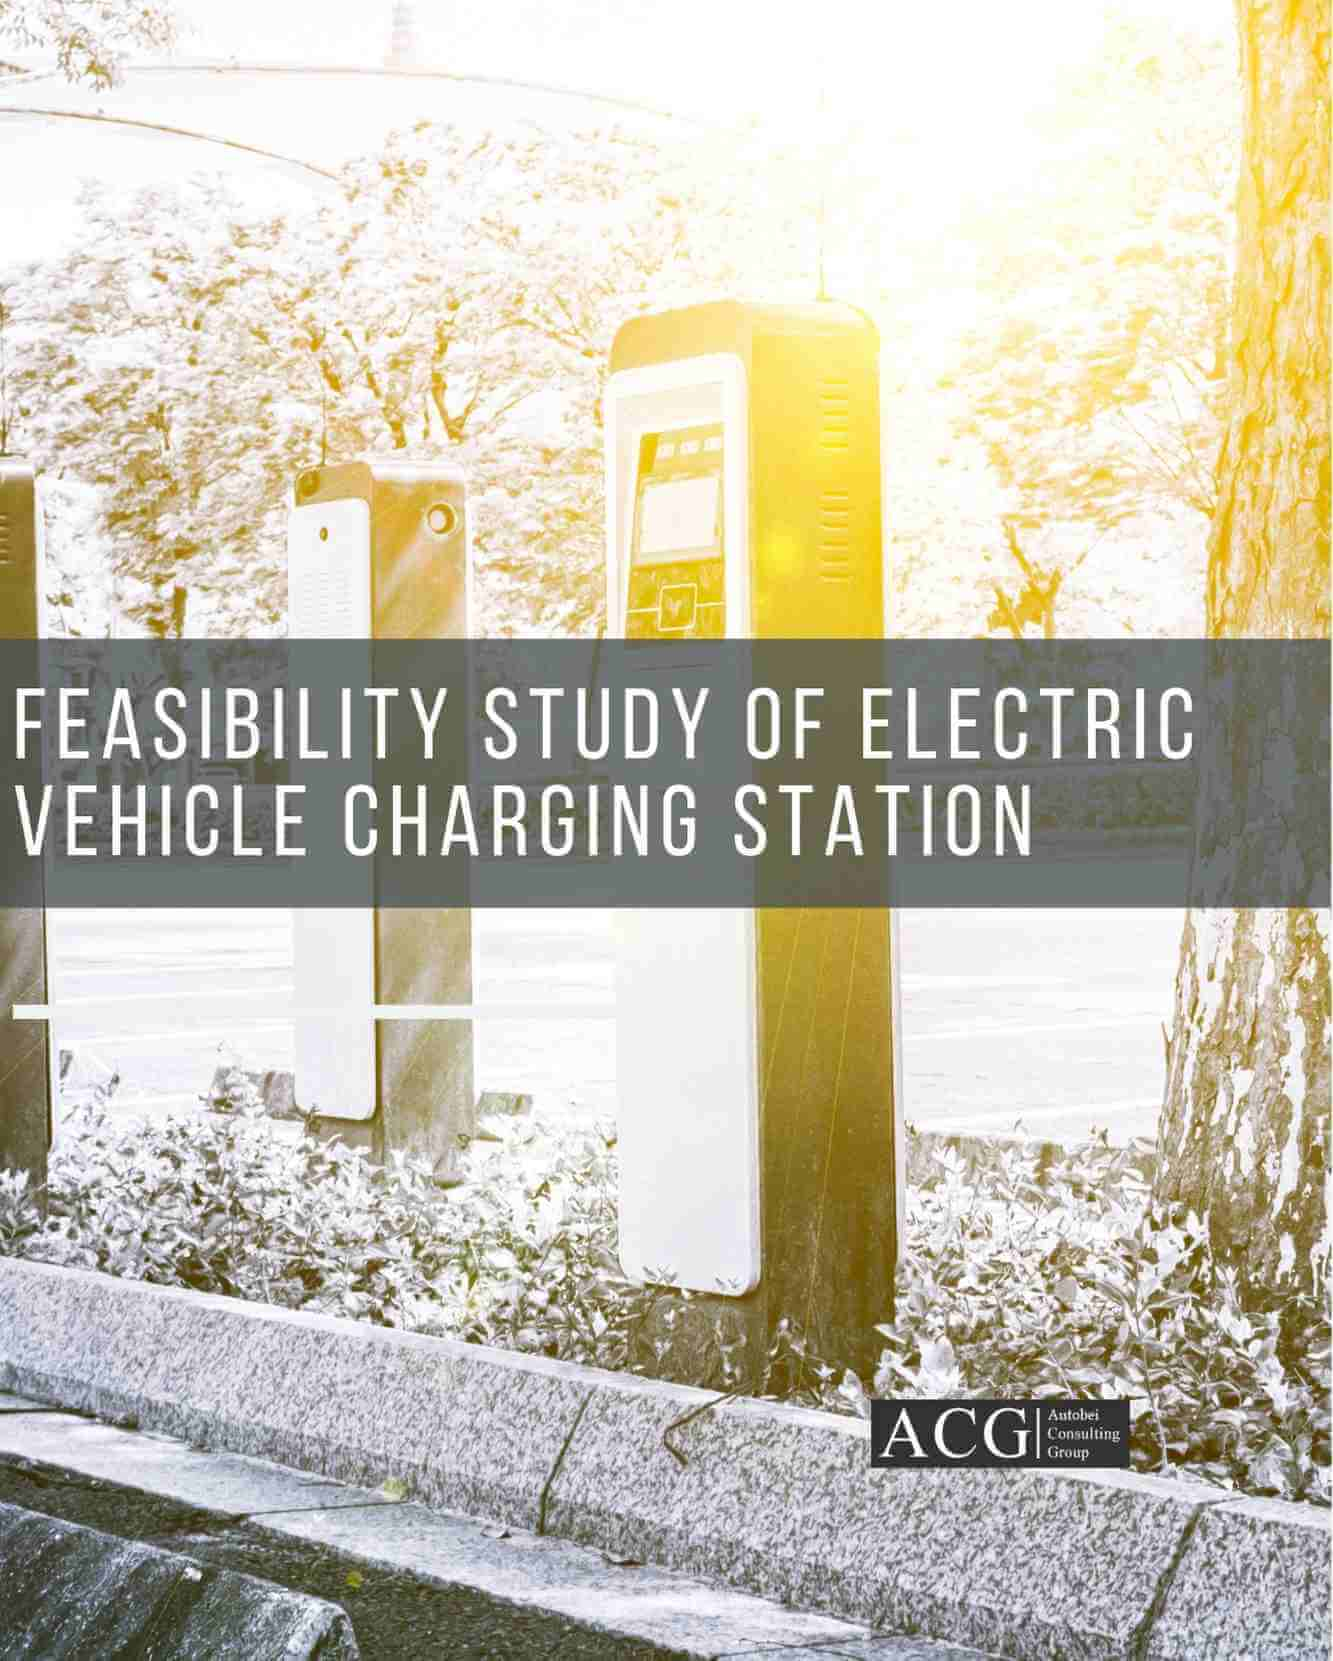 Feasibility Study of Electric Vehicle Charging Station